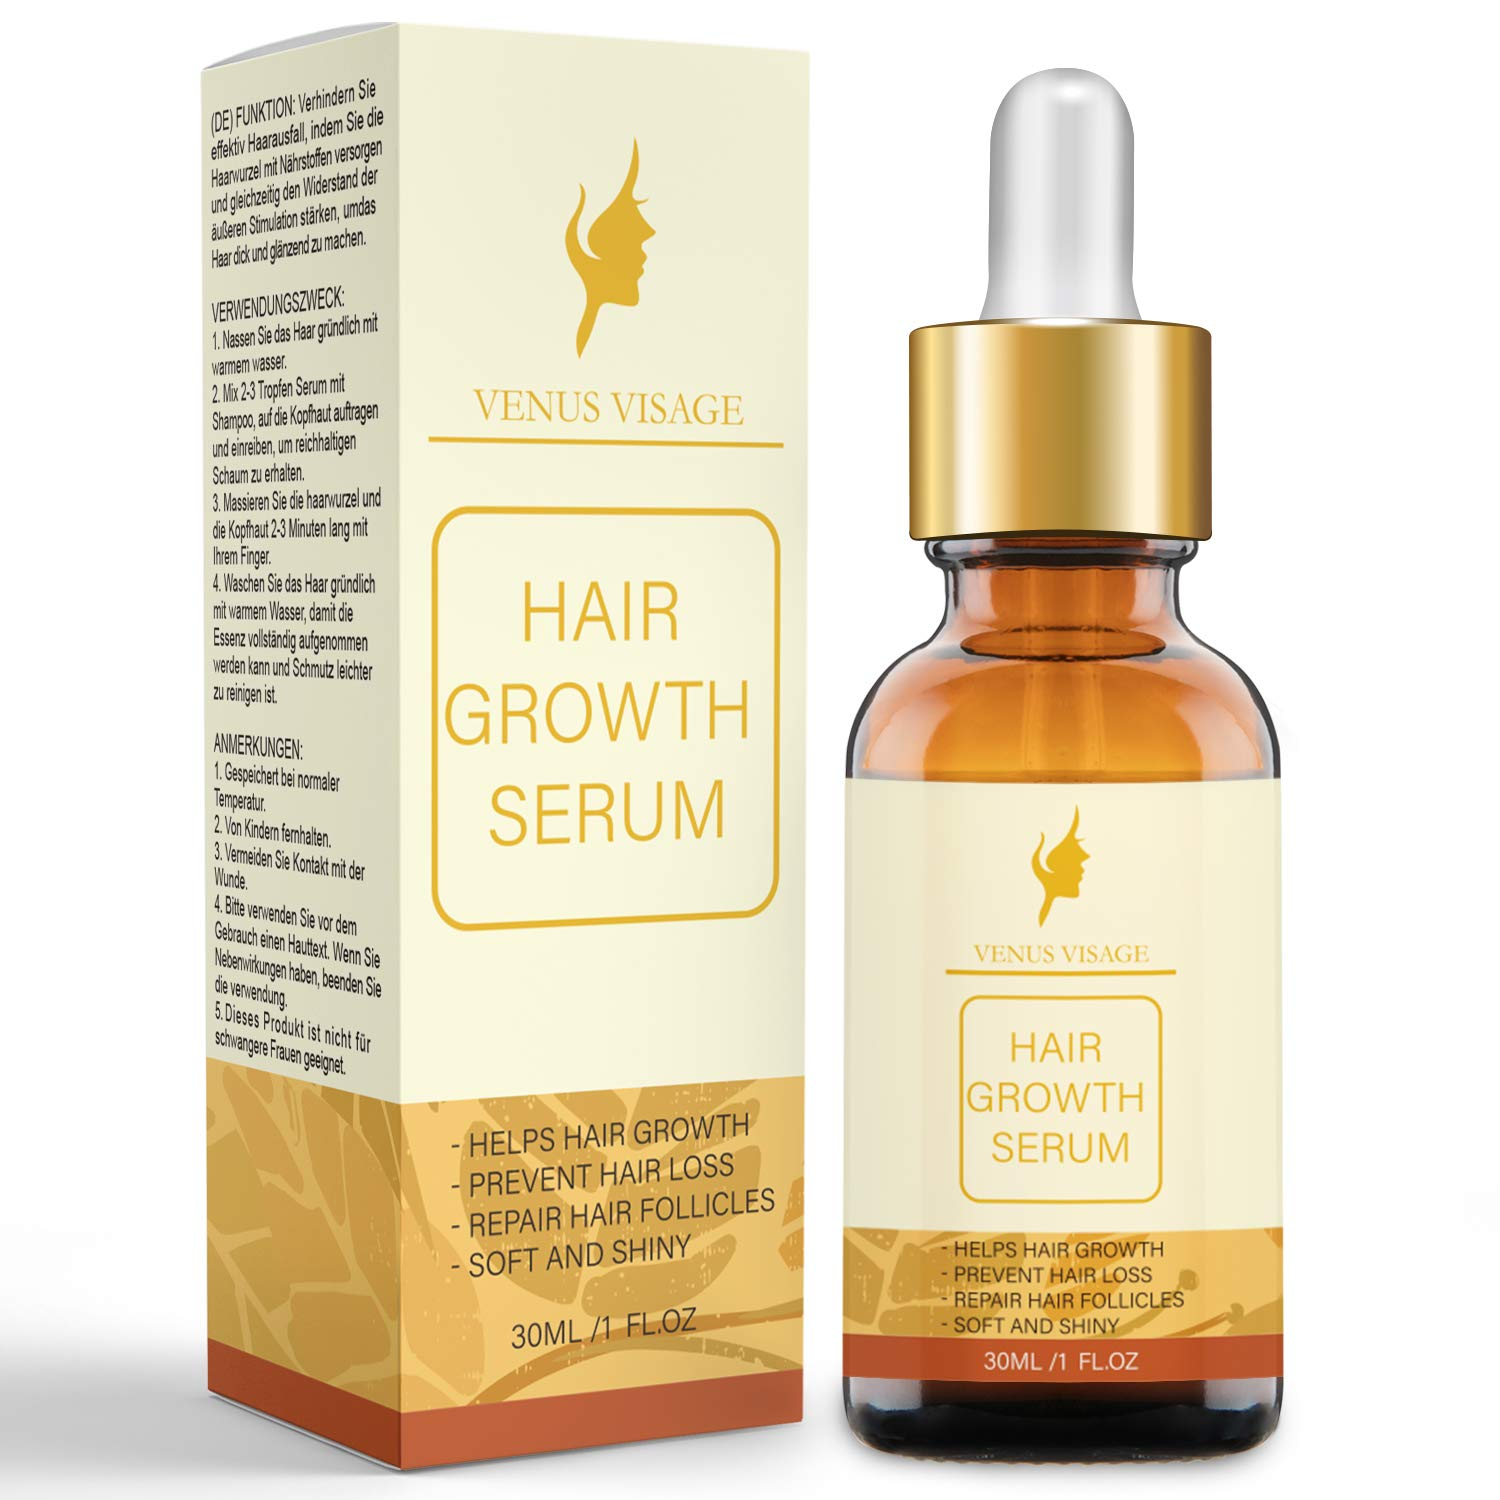 Hair Growth Oil Hair Growth Serum for Thicker Longer Fuller Healthier Hair, Prevent Hair Loss & Thinning, All Natural Vitamin Rich Treatment, Women & Men, All Hair Types